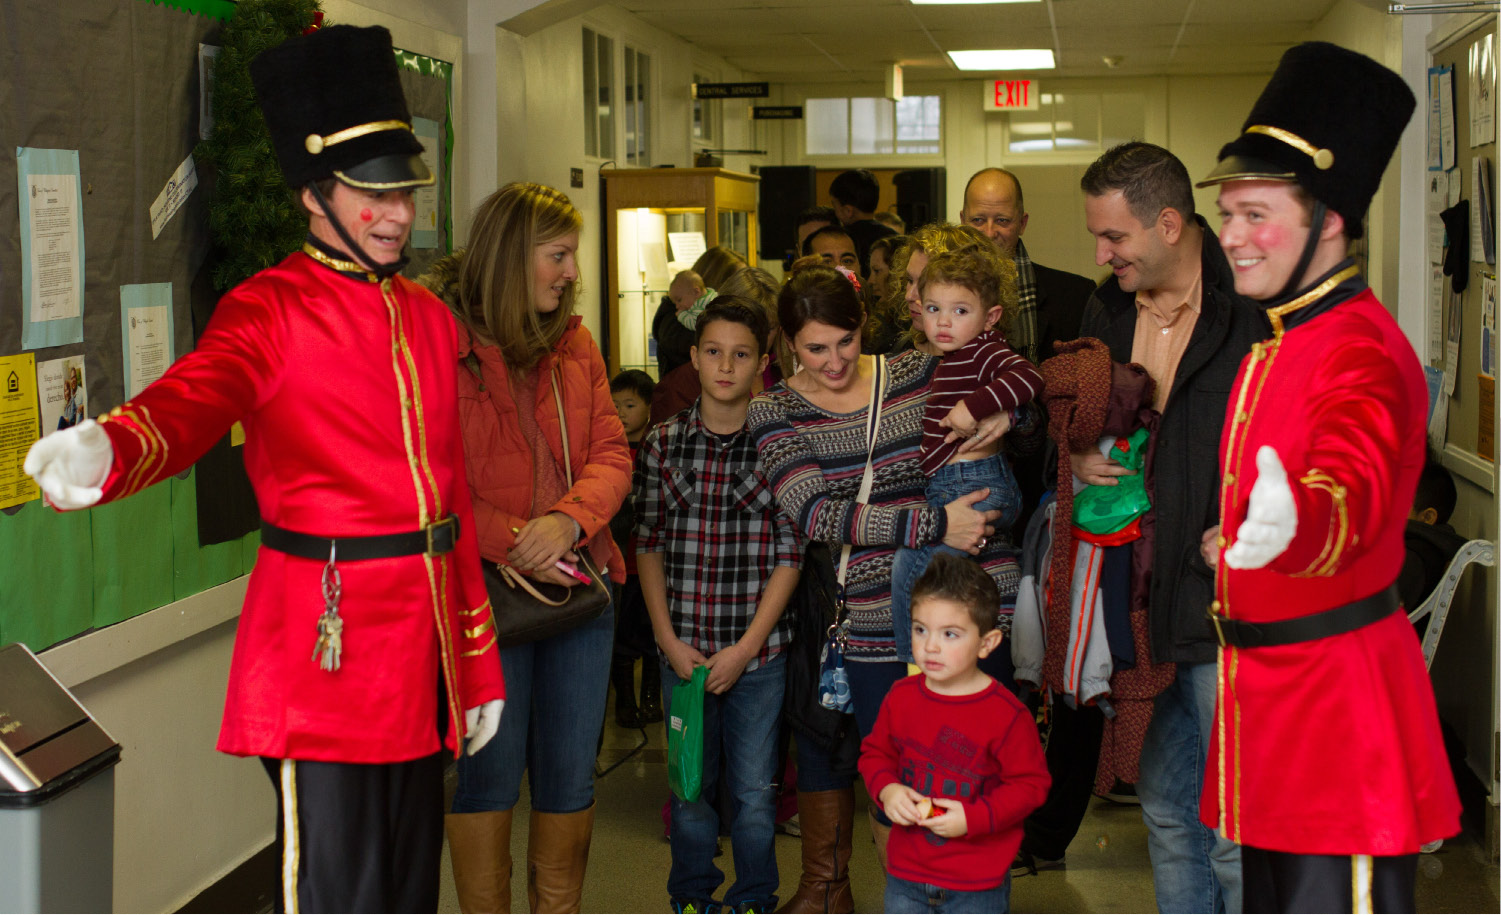 Mayor William W. Dickinson Jr., left, and Sam Carmody, dressed as toy soldiers, lets a family pass through to take photos with Santa Claus in 2014.| File photo, Record-Journal